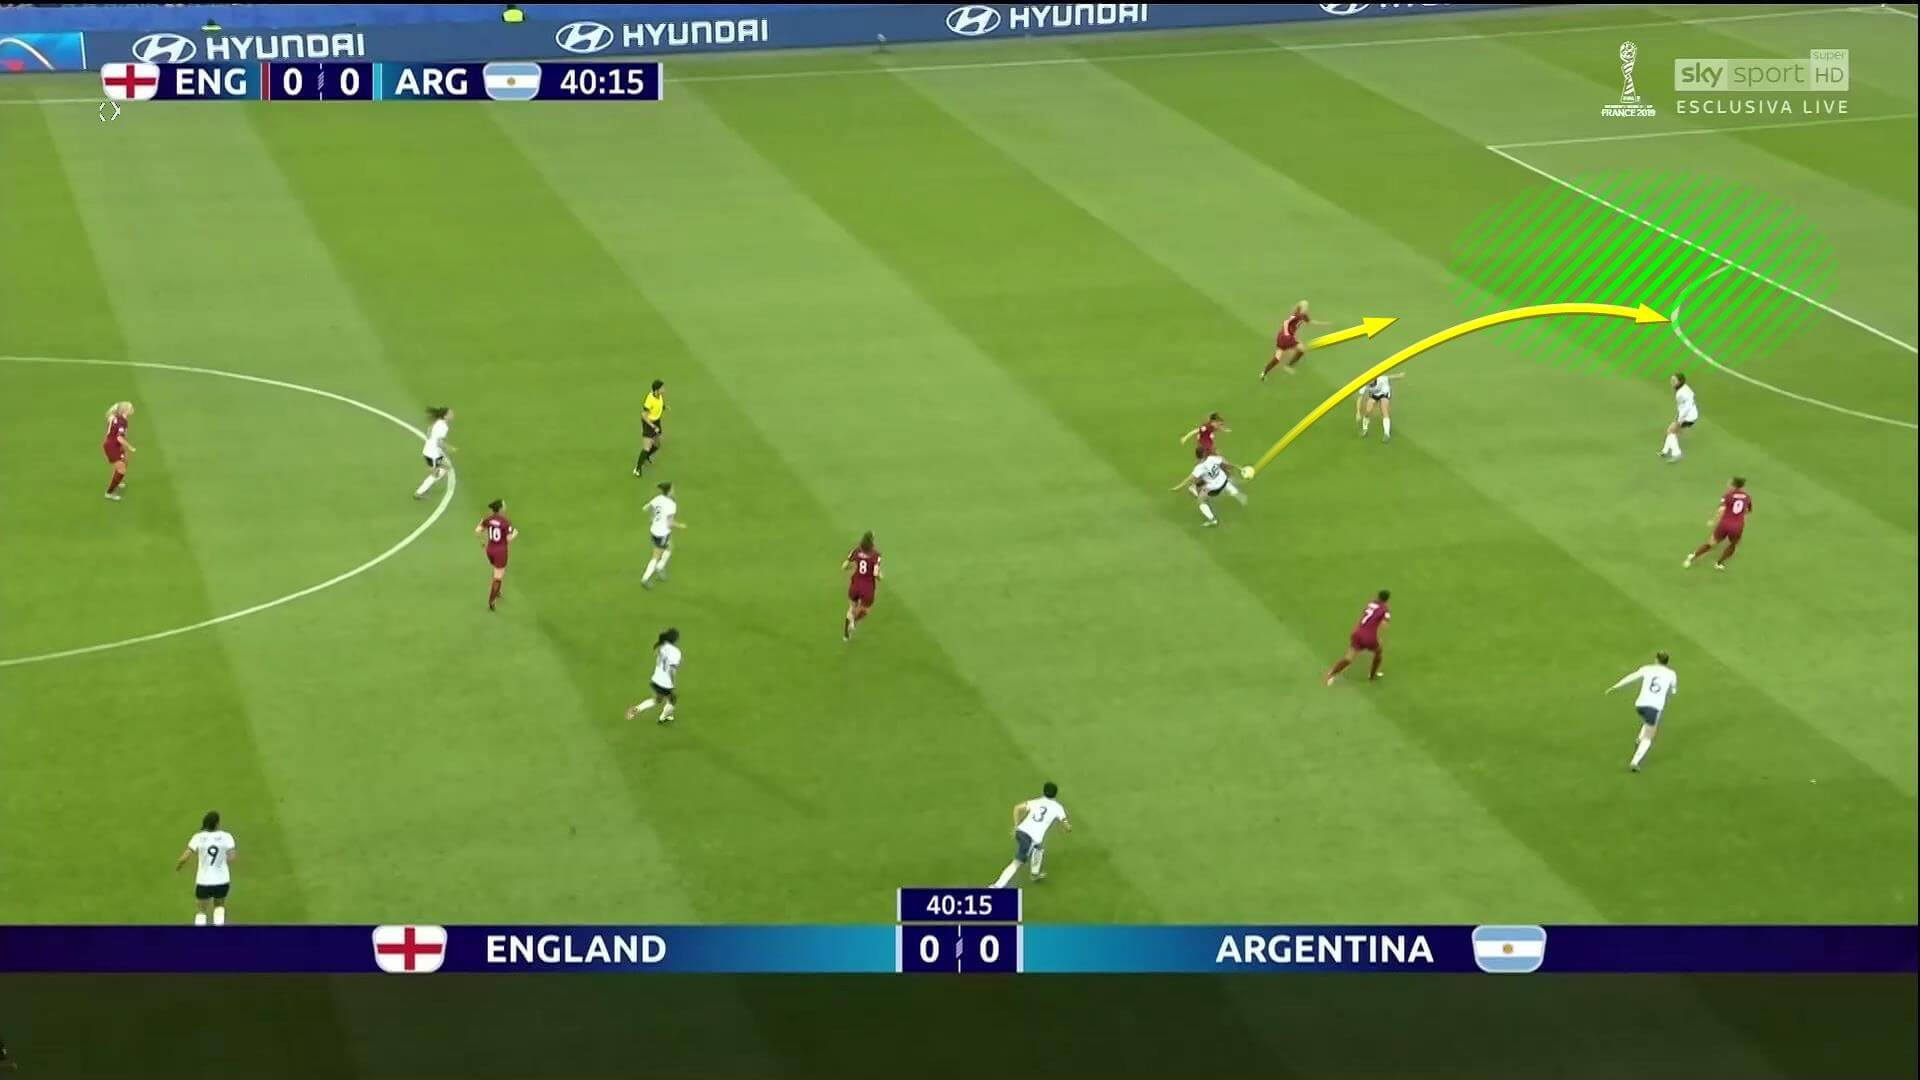 FIFA Women's World Cup 2019 Tactical Analysis: England vs Argentina